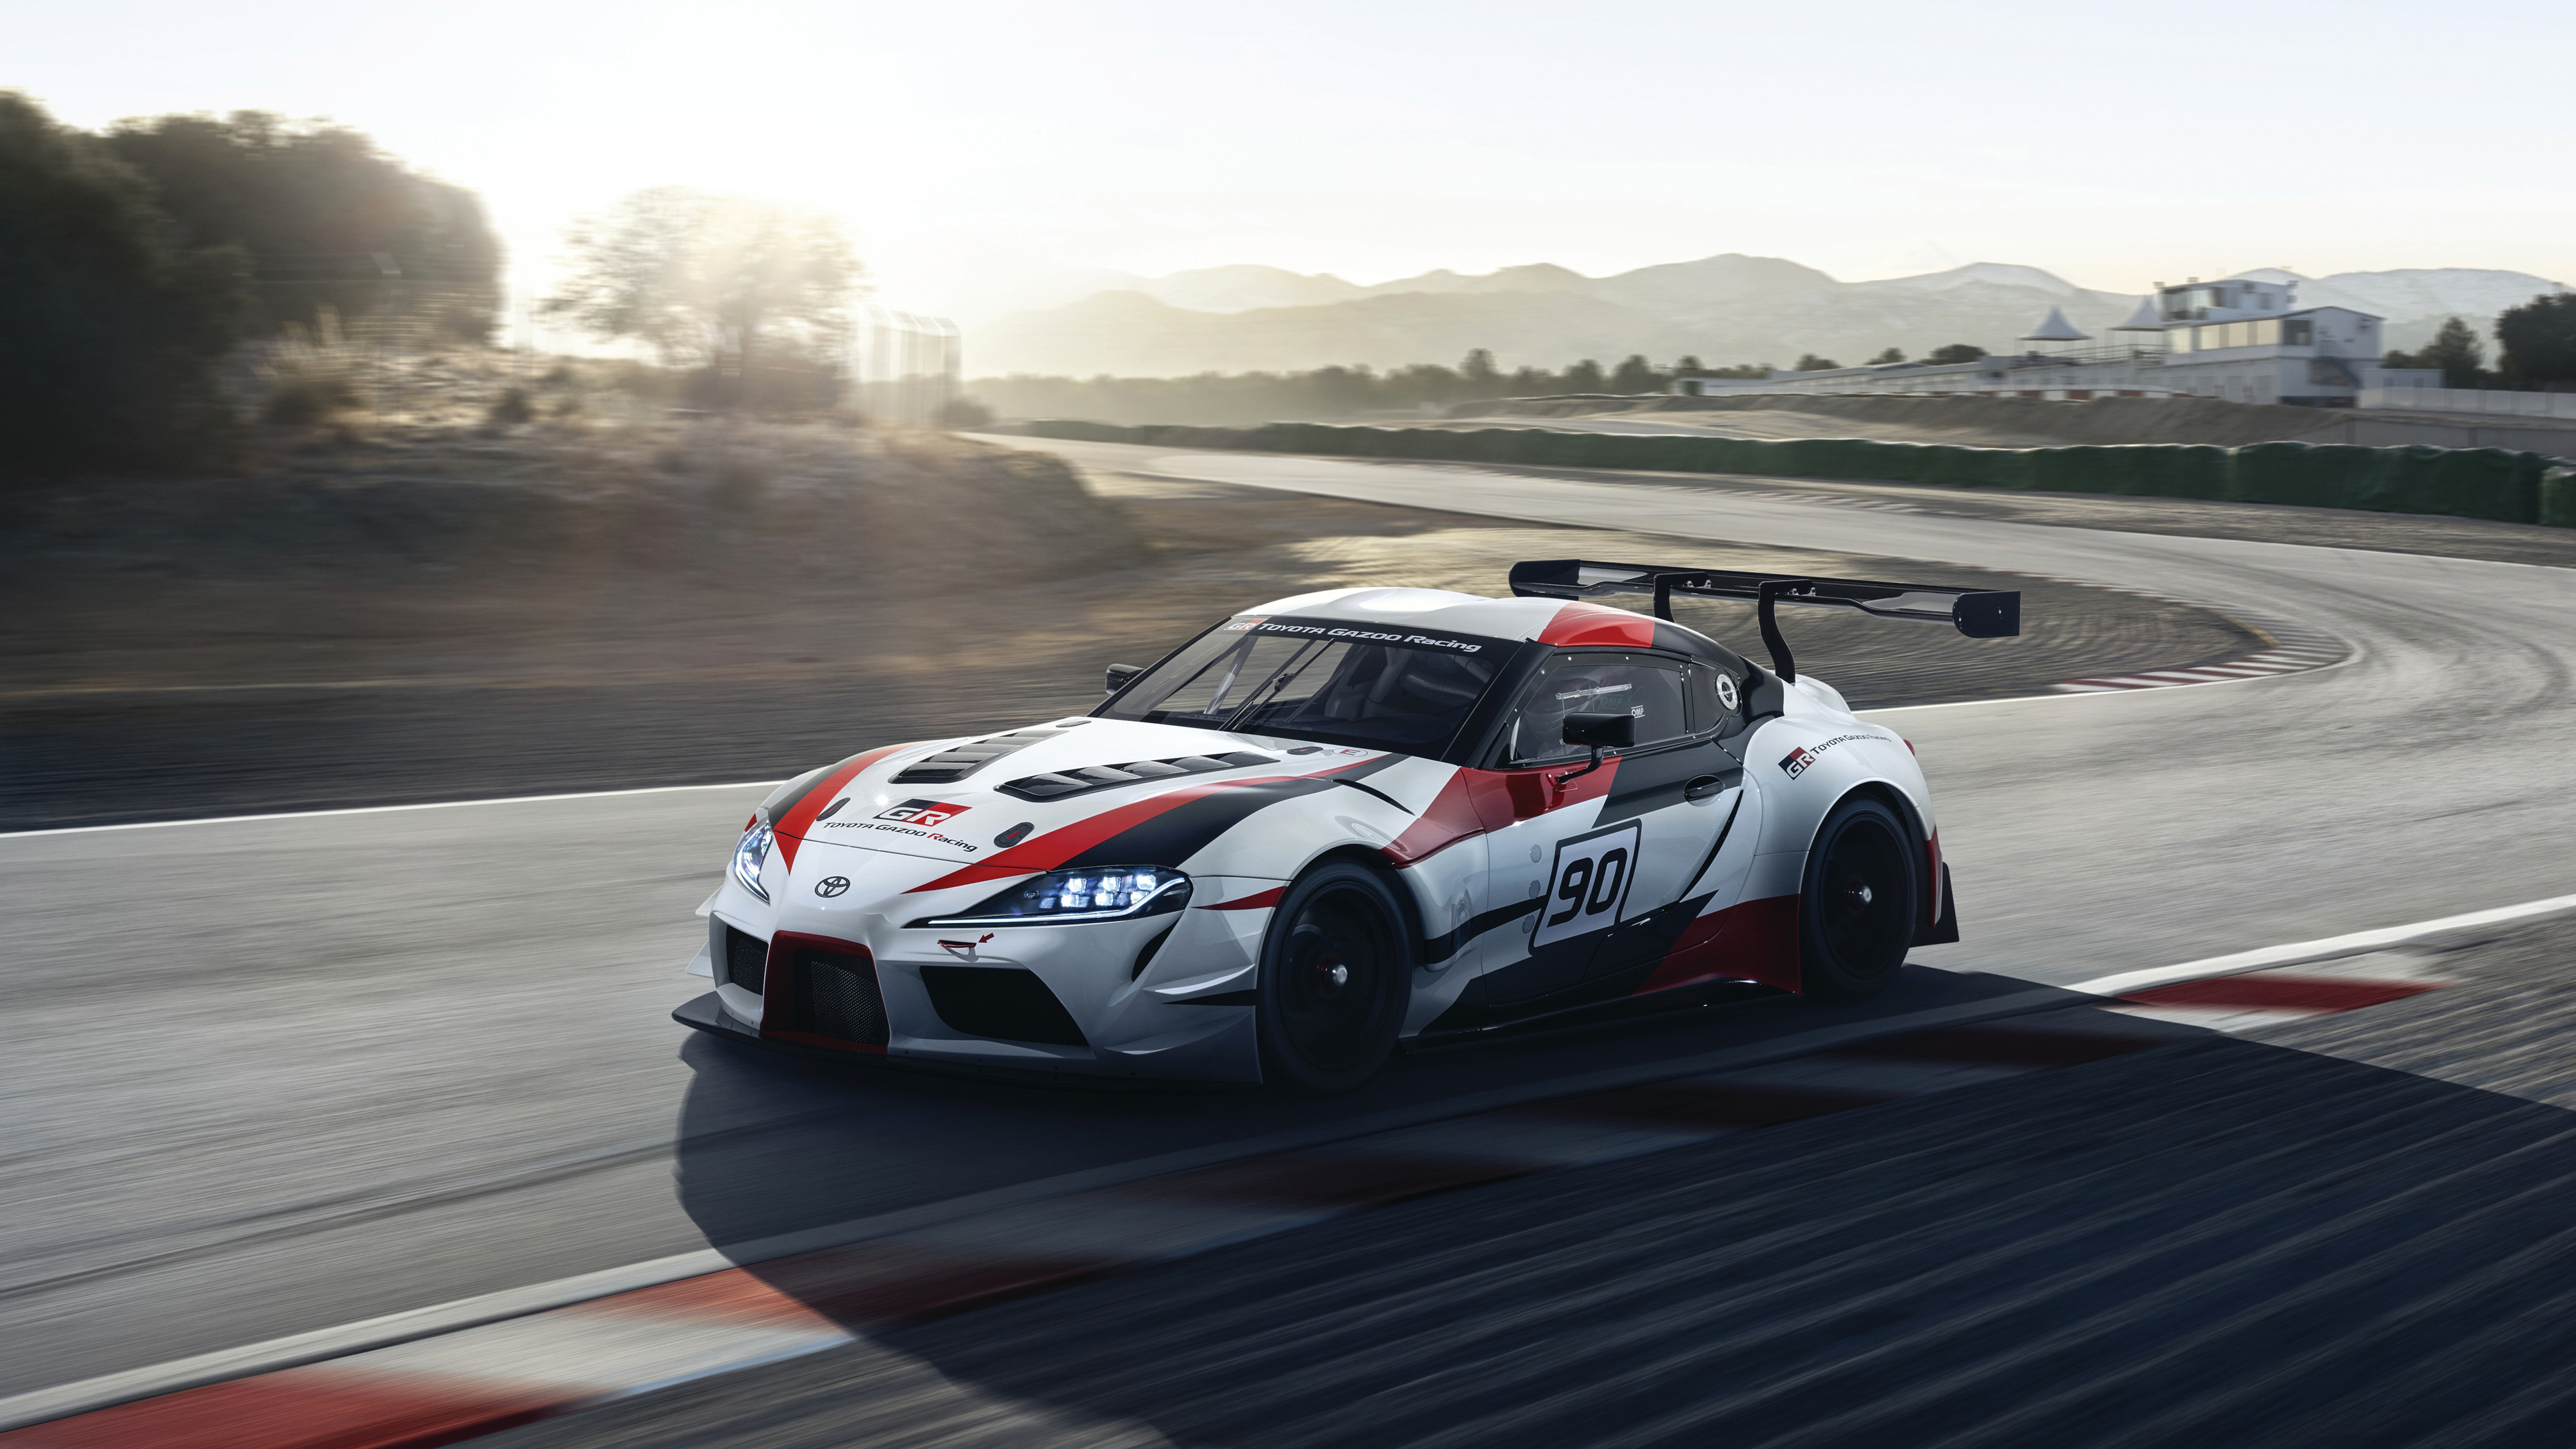 2018 Toyota Gr Supra Racing Concept 4k 2 Wallpaper Hd Car